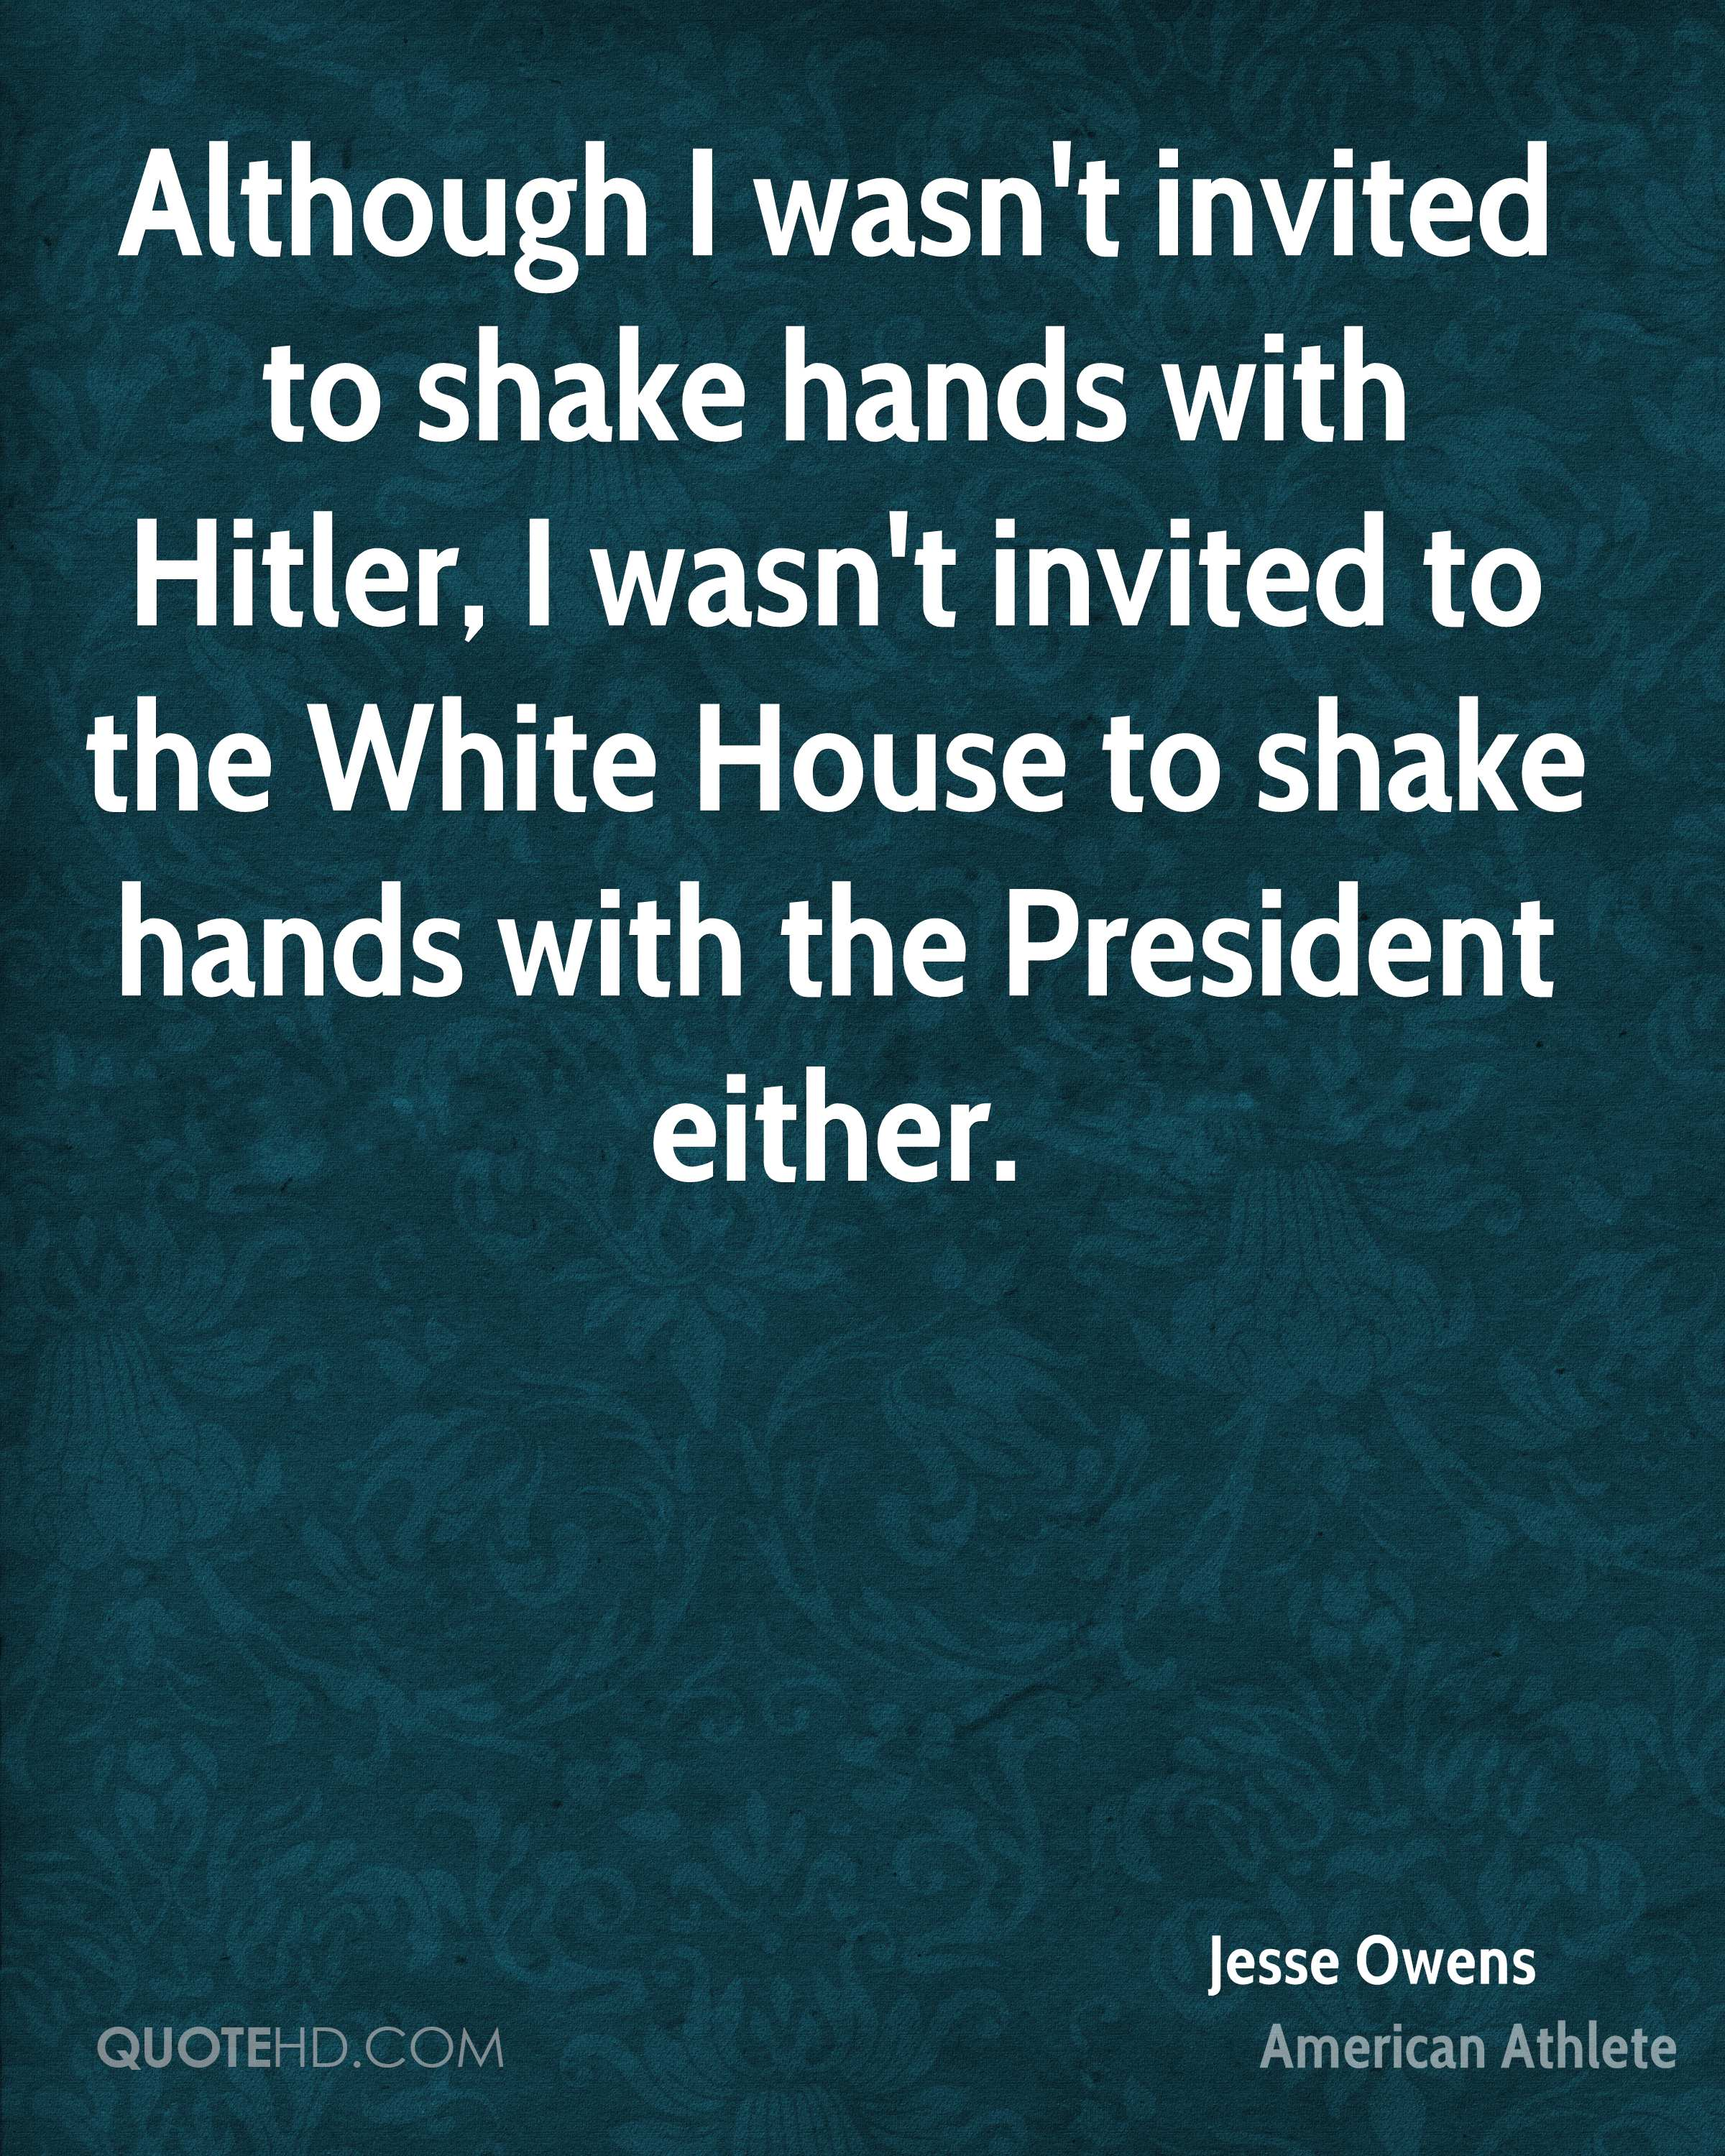 Although I wasn't invited to shake hands with Hitler, I wasn't invited to the White House to shake hands with the President either.